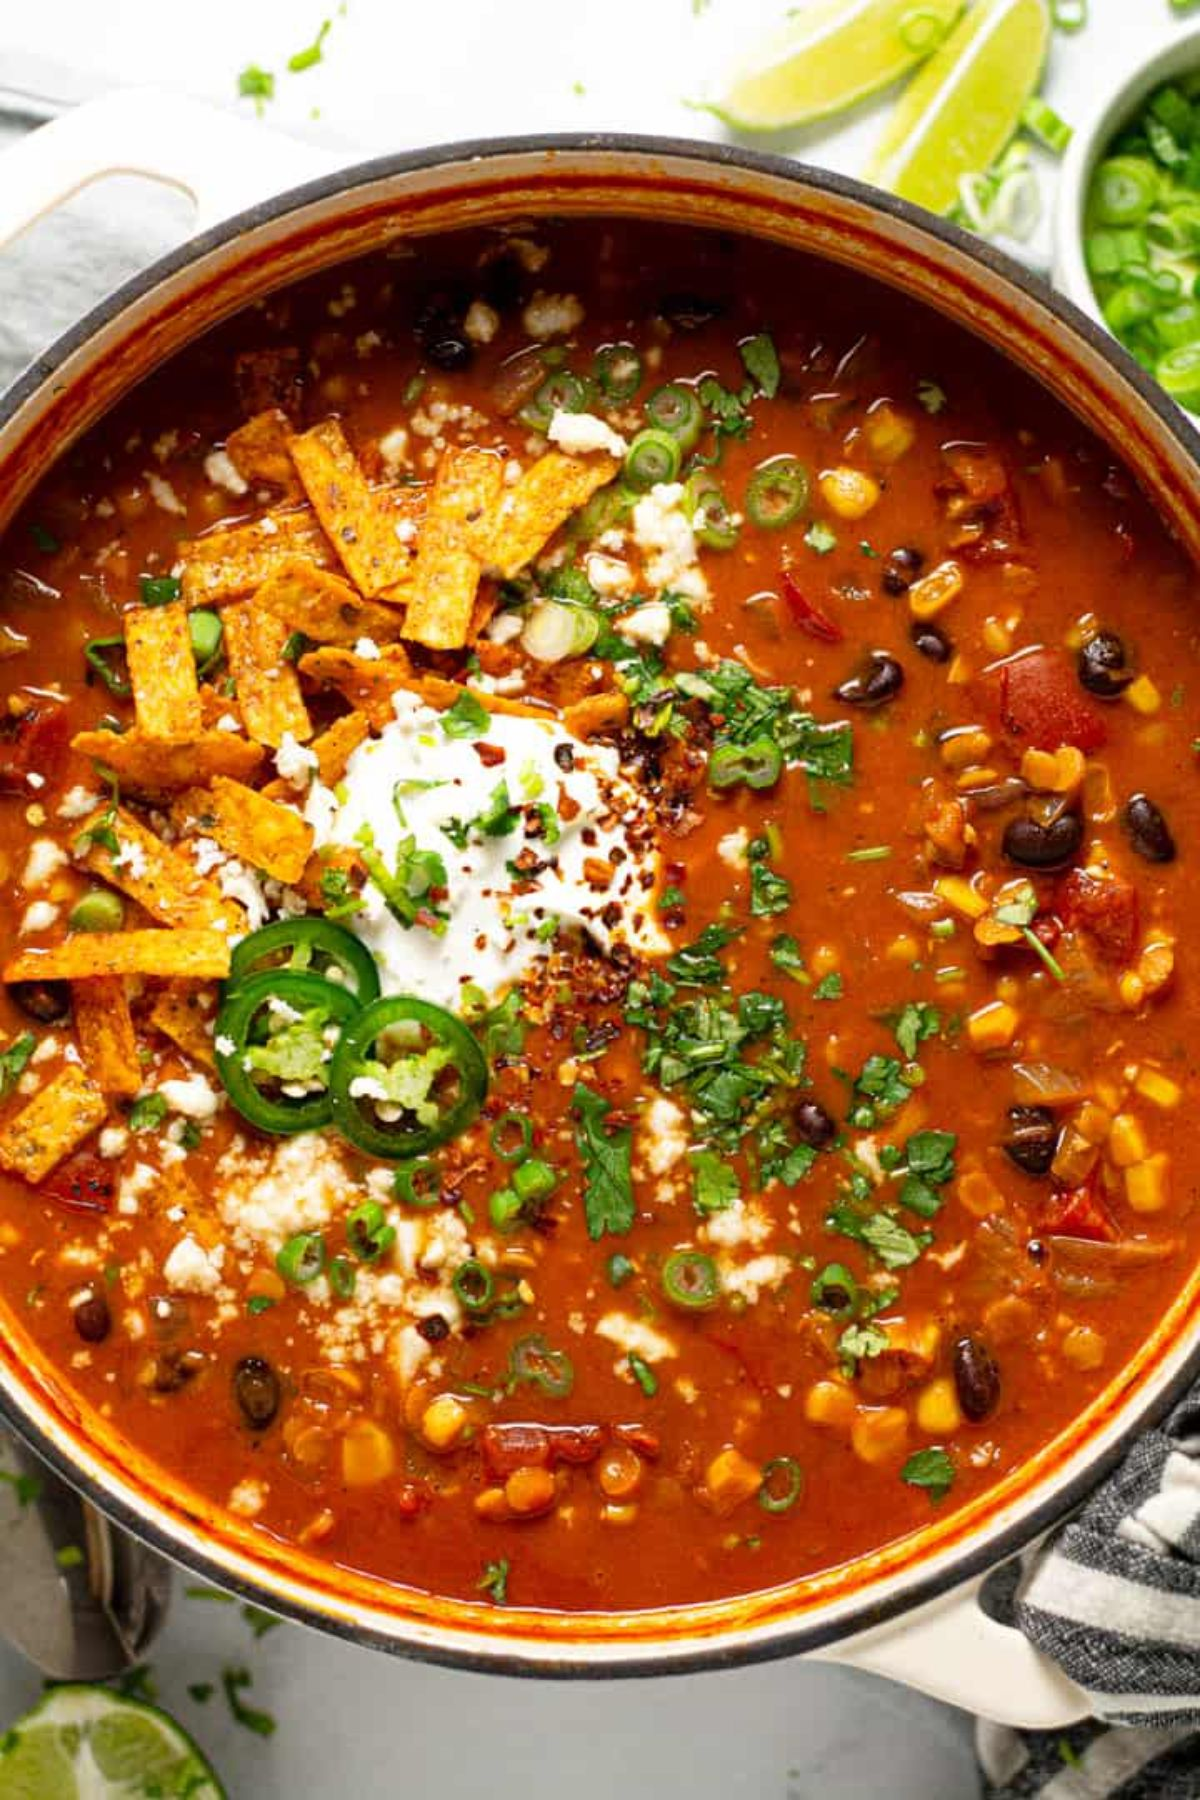 a pan full of lentil tortilla soup topped with chopped herbs, sliced tortillas and jalapeno slices